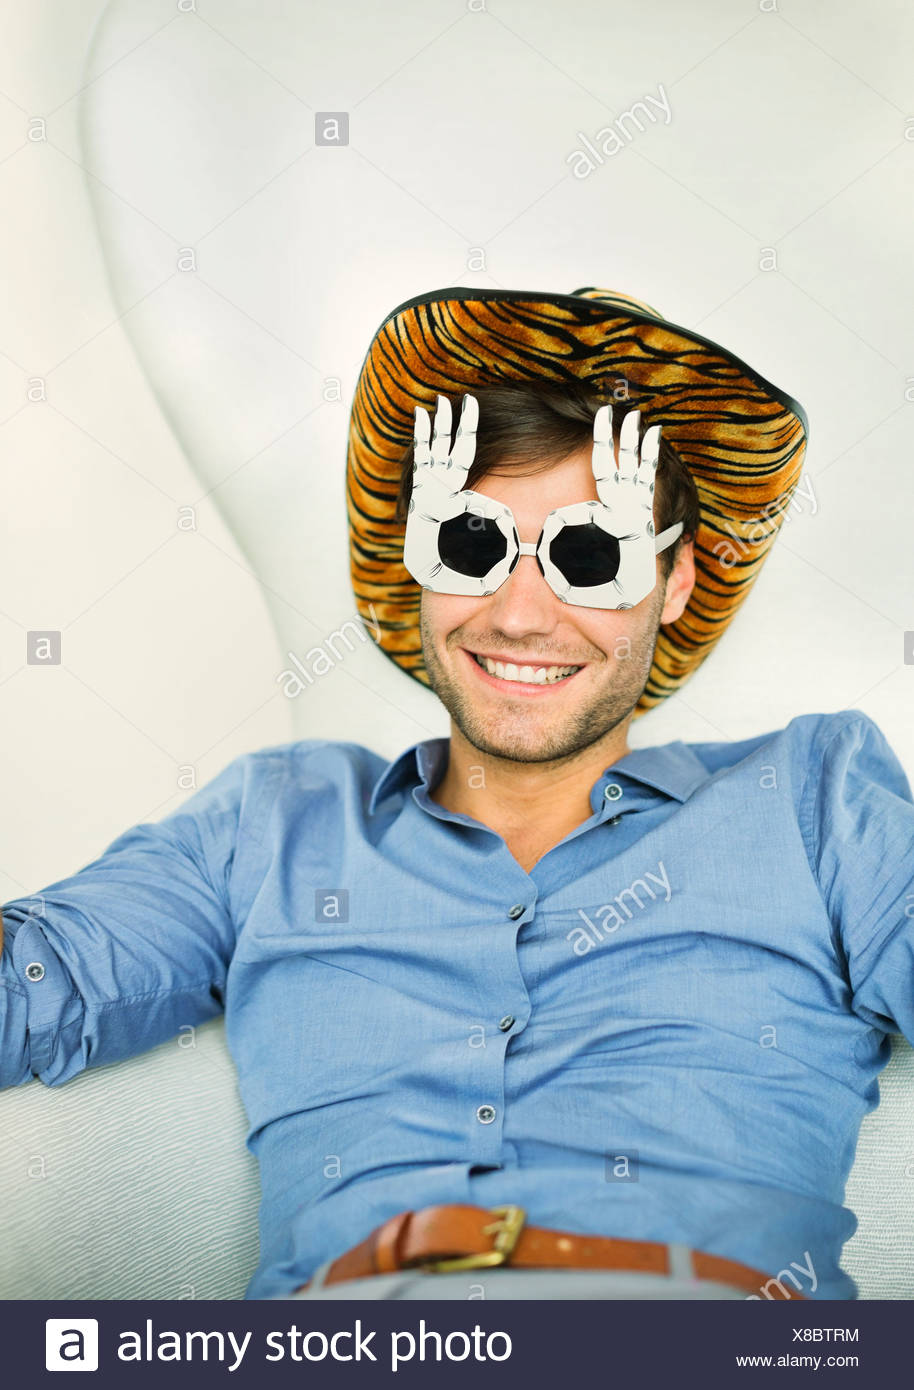 Smiling man wearing glasses stupide Photo Stock